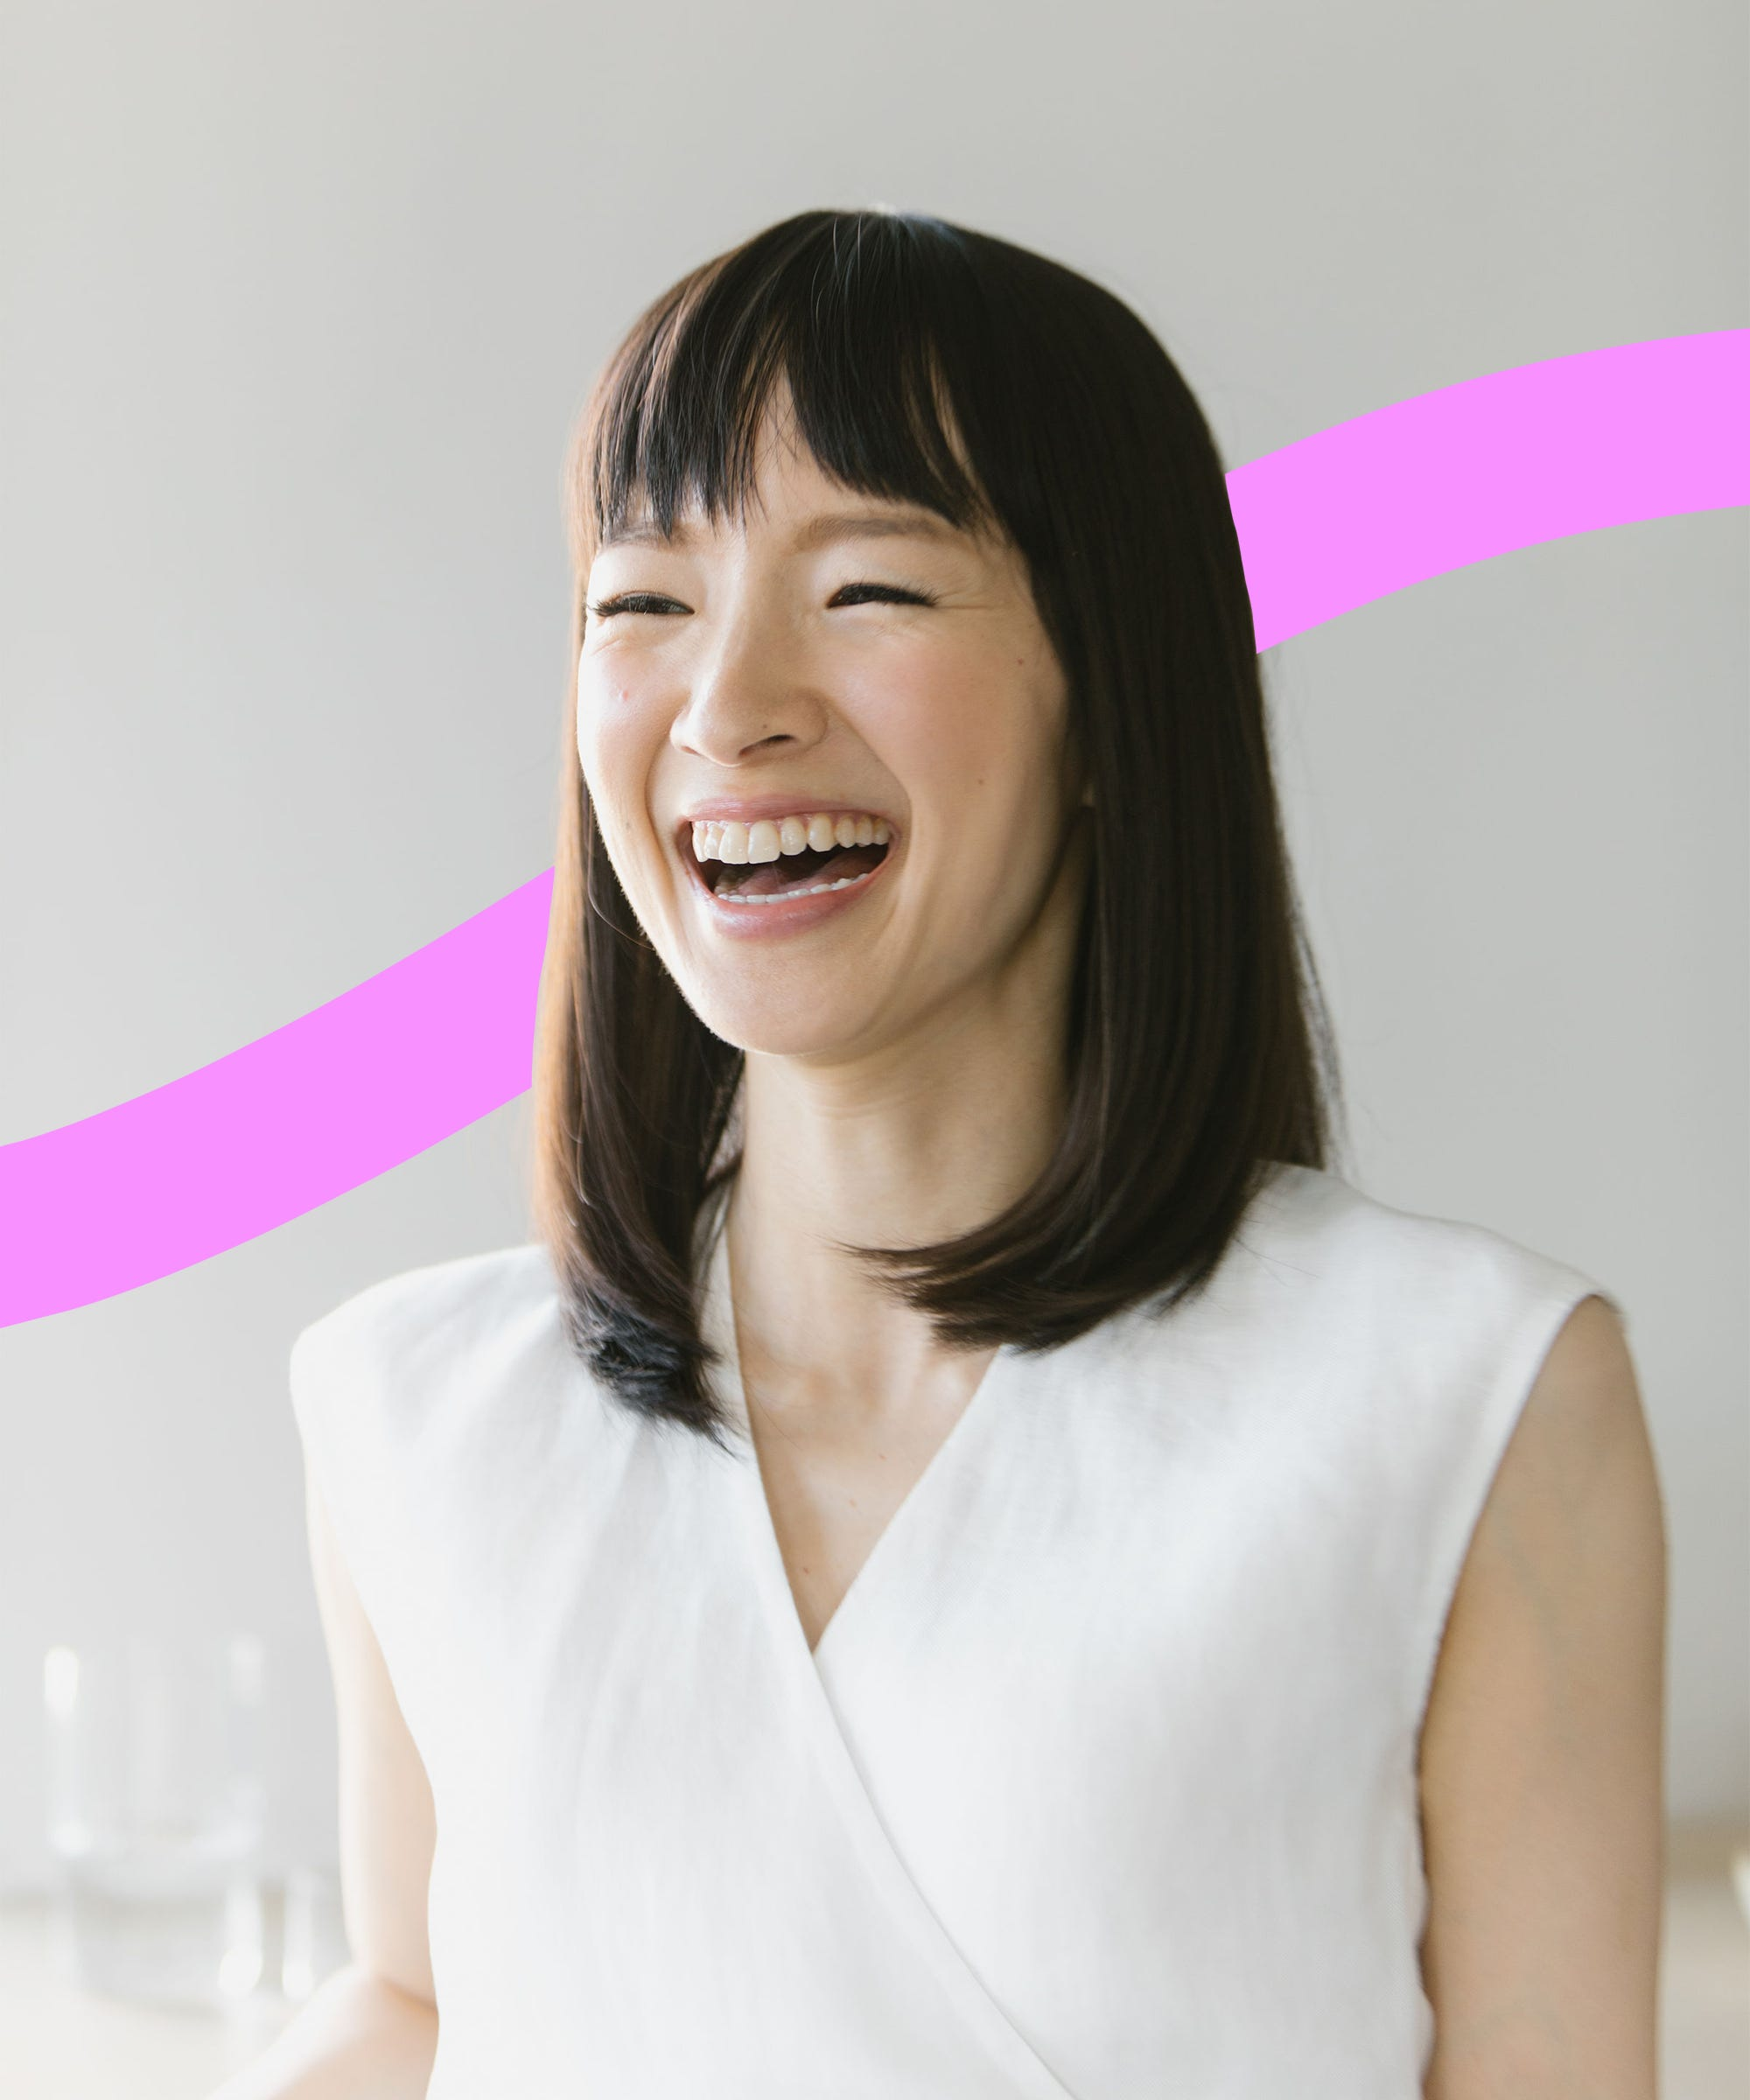 This Is How Much Money Marie Kondo Has Made From Her Tidying Empire